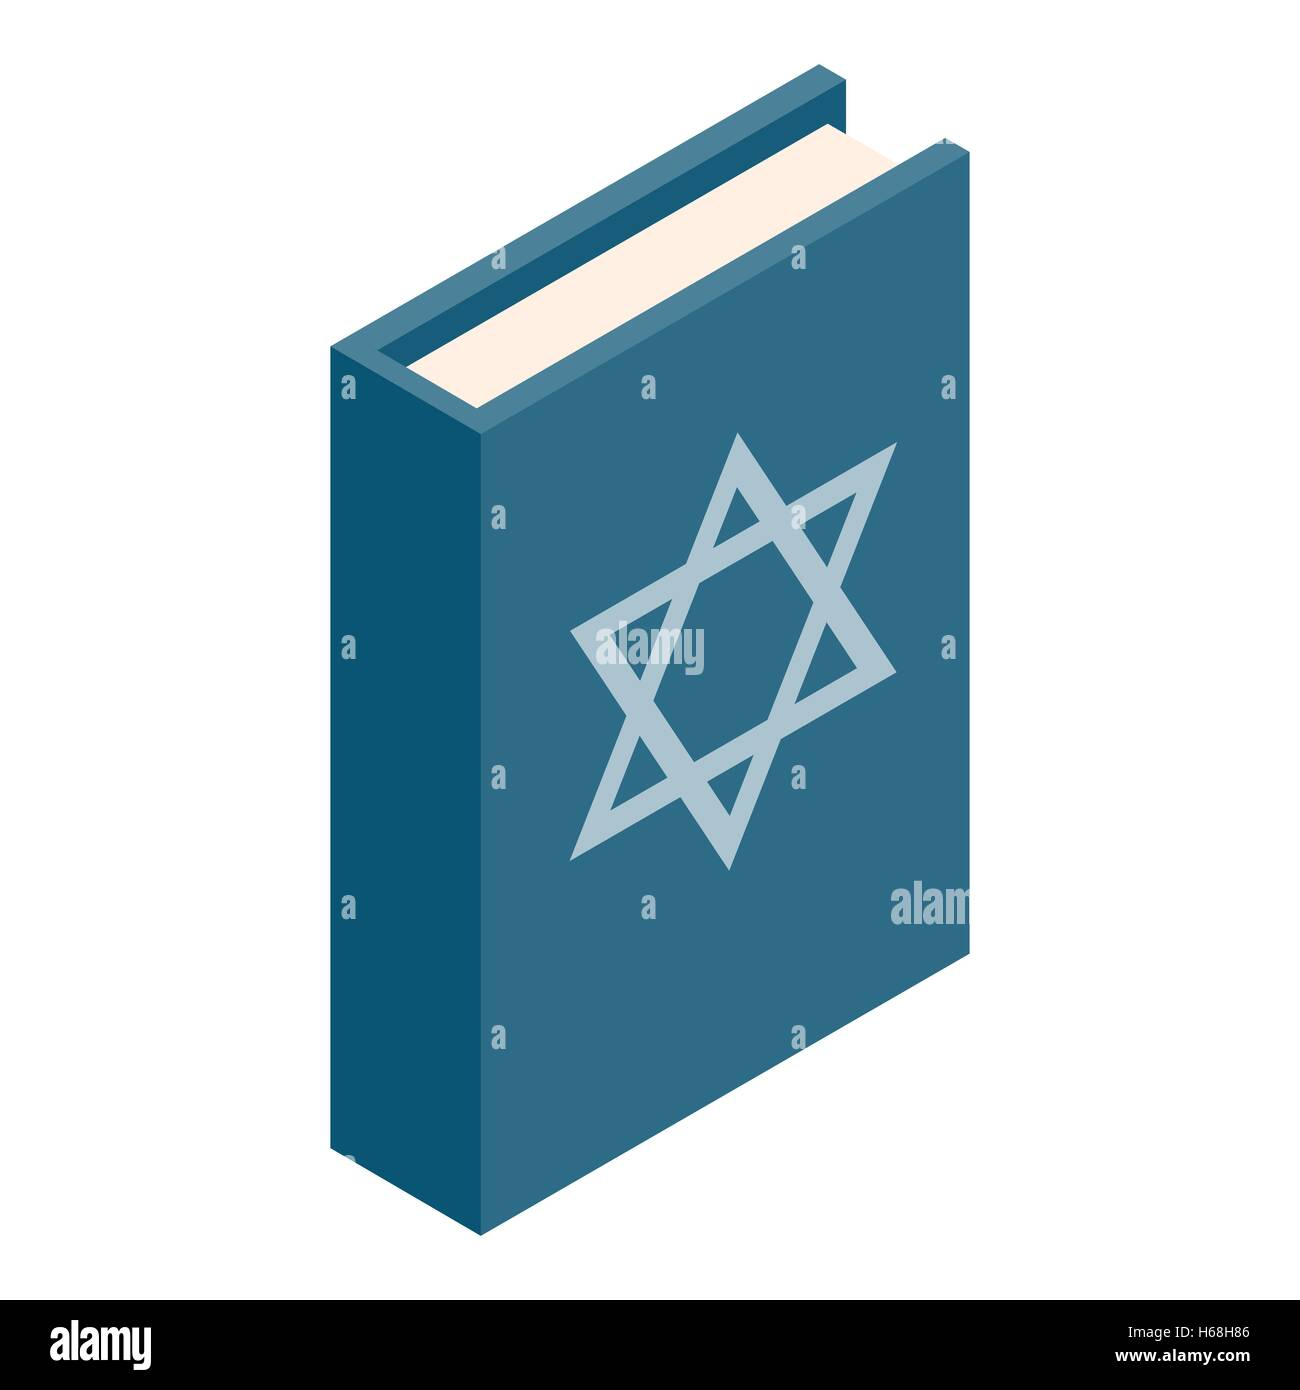 The Book of Judaism isometric 3d icon - Stock Image